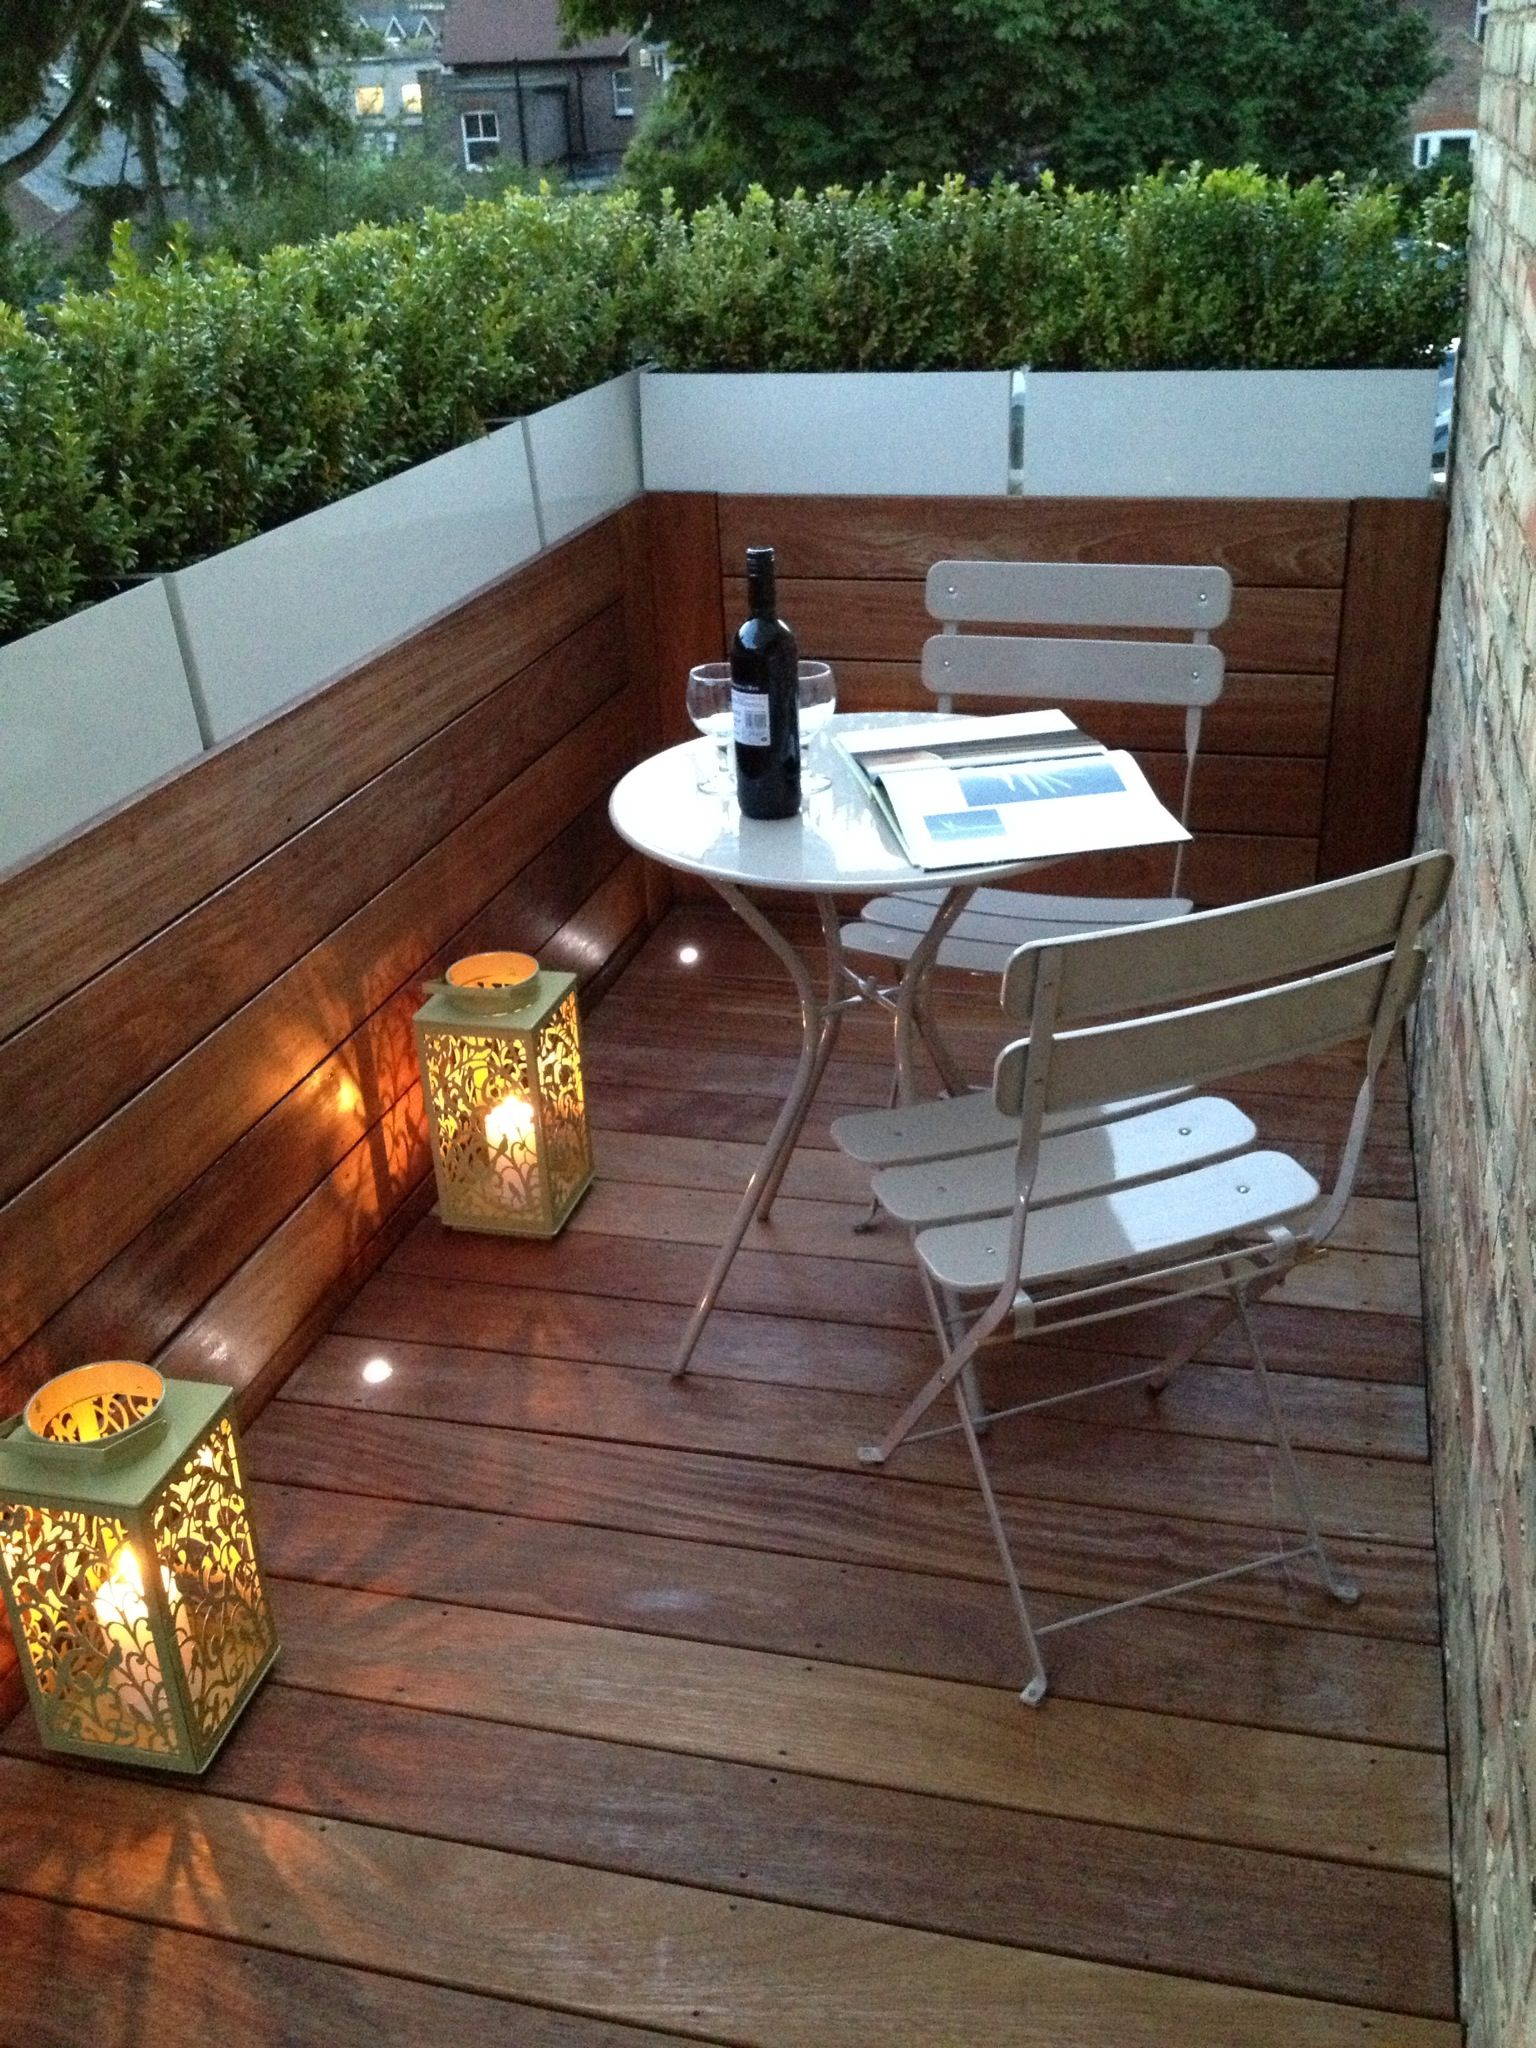 Lighting for small balconies - Small Roof Terrace With Planters Lighting Bottle Of Wine